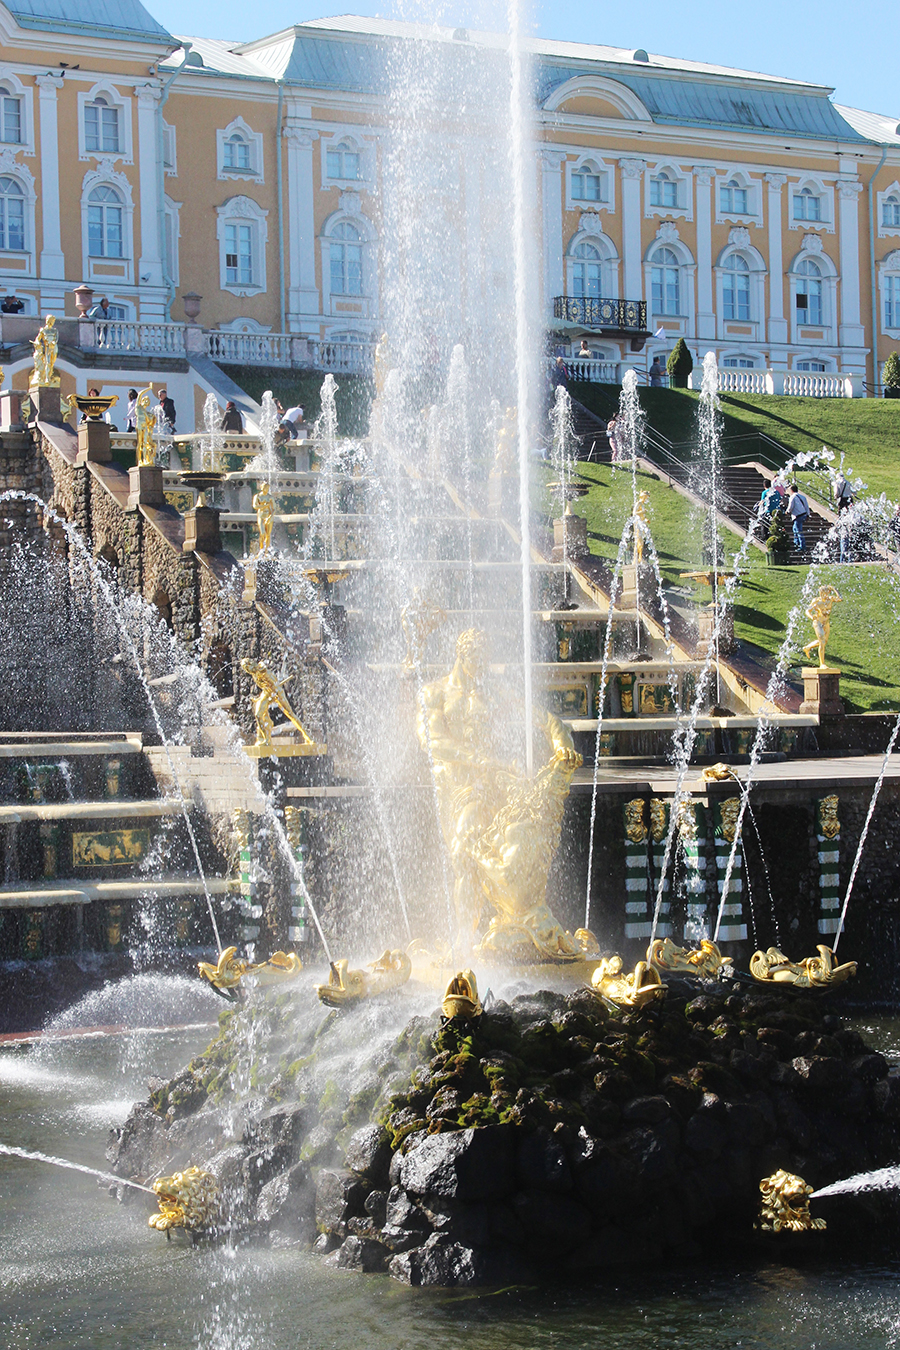 Peterhof Palace, Saint Petersburg, Russia